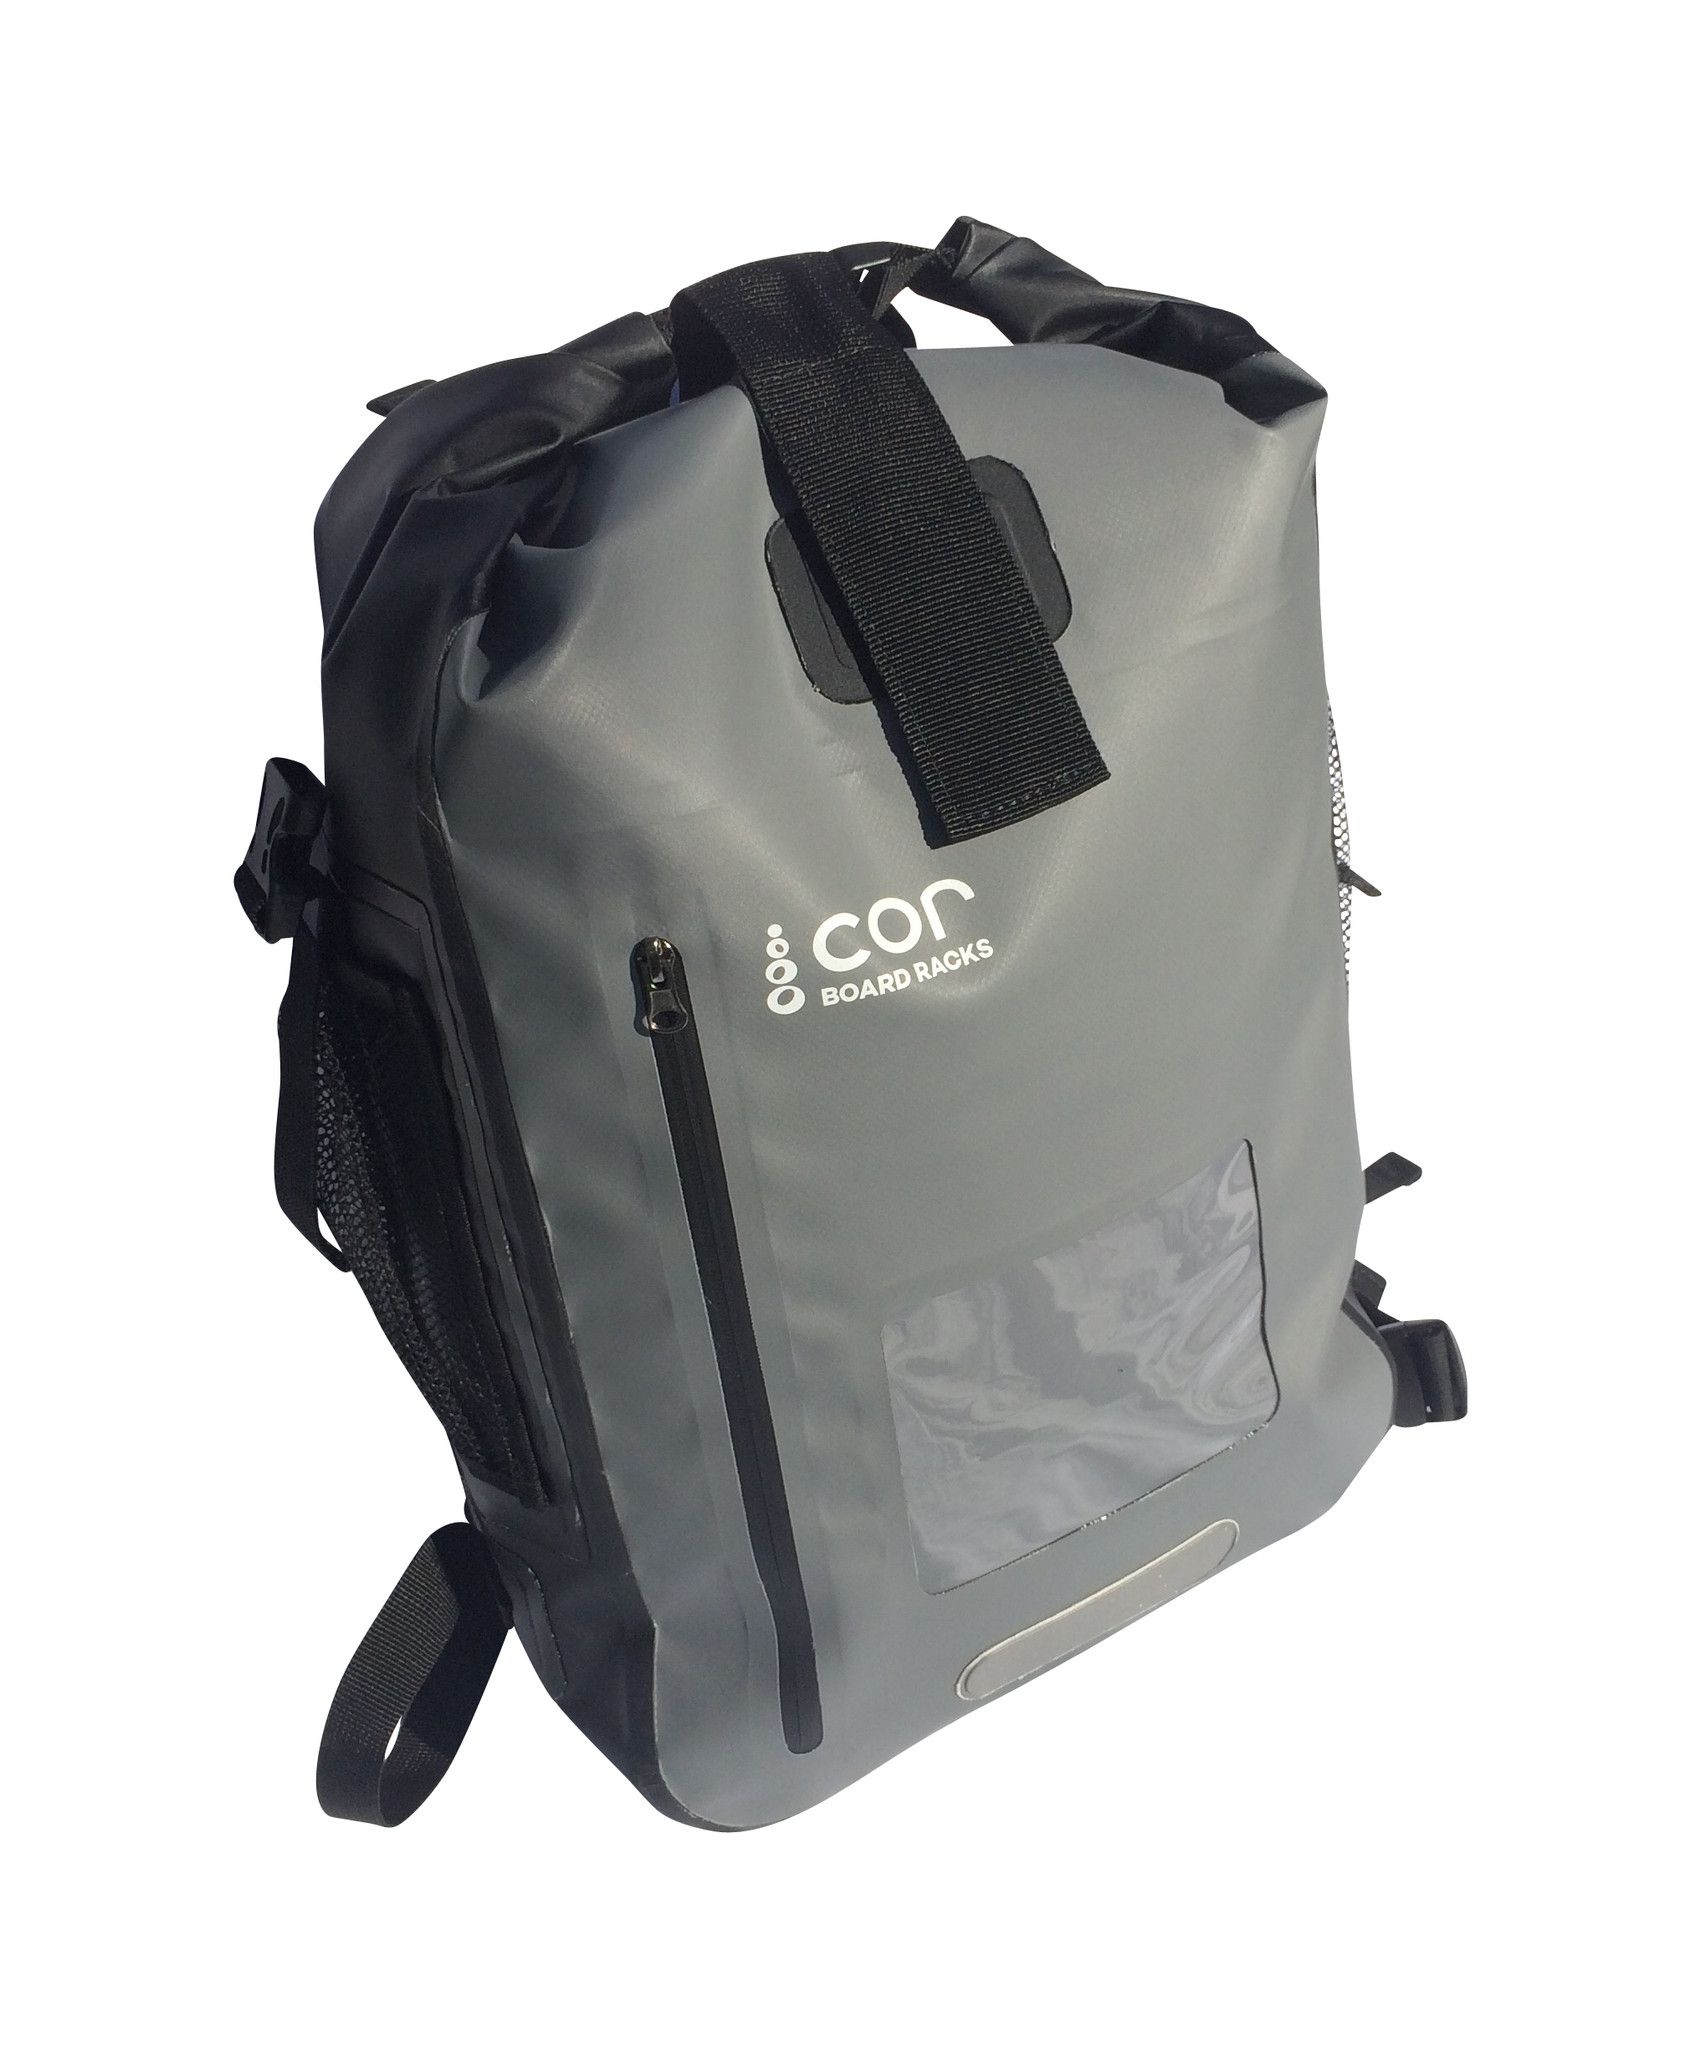 606673706b1 ... The Cor Surf 40l Waterproof Backpack new product b15fb cda49  Waterproof  Backpack - by Cor Surf with Padded Laptop Sleeve 25L and 40L Dry Bag  Backpack ...